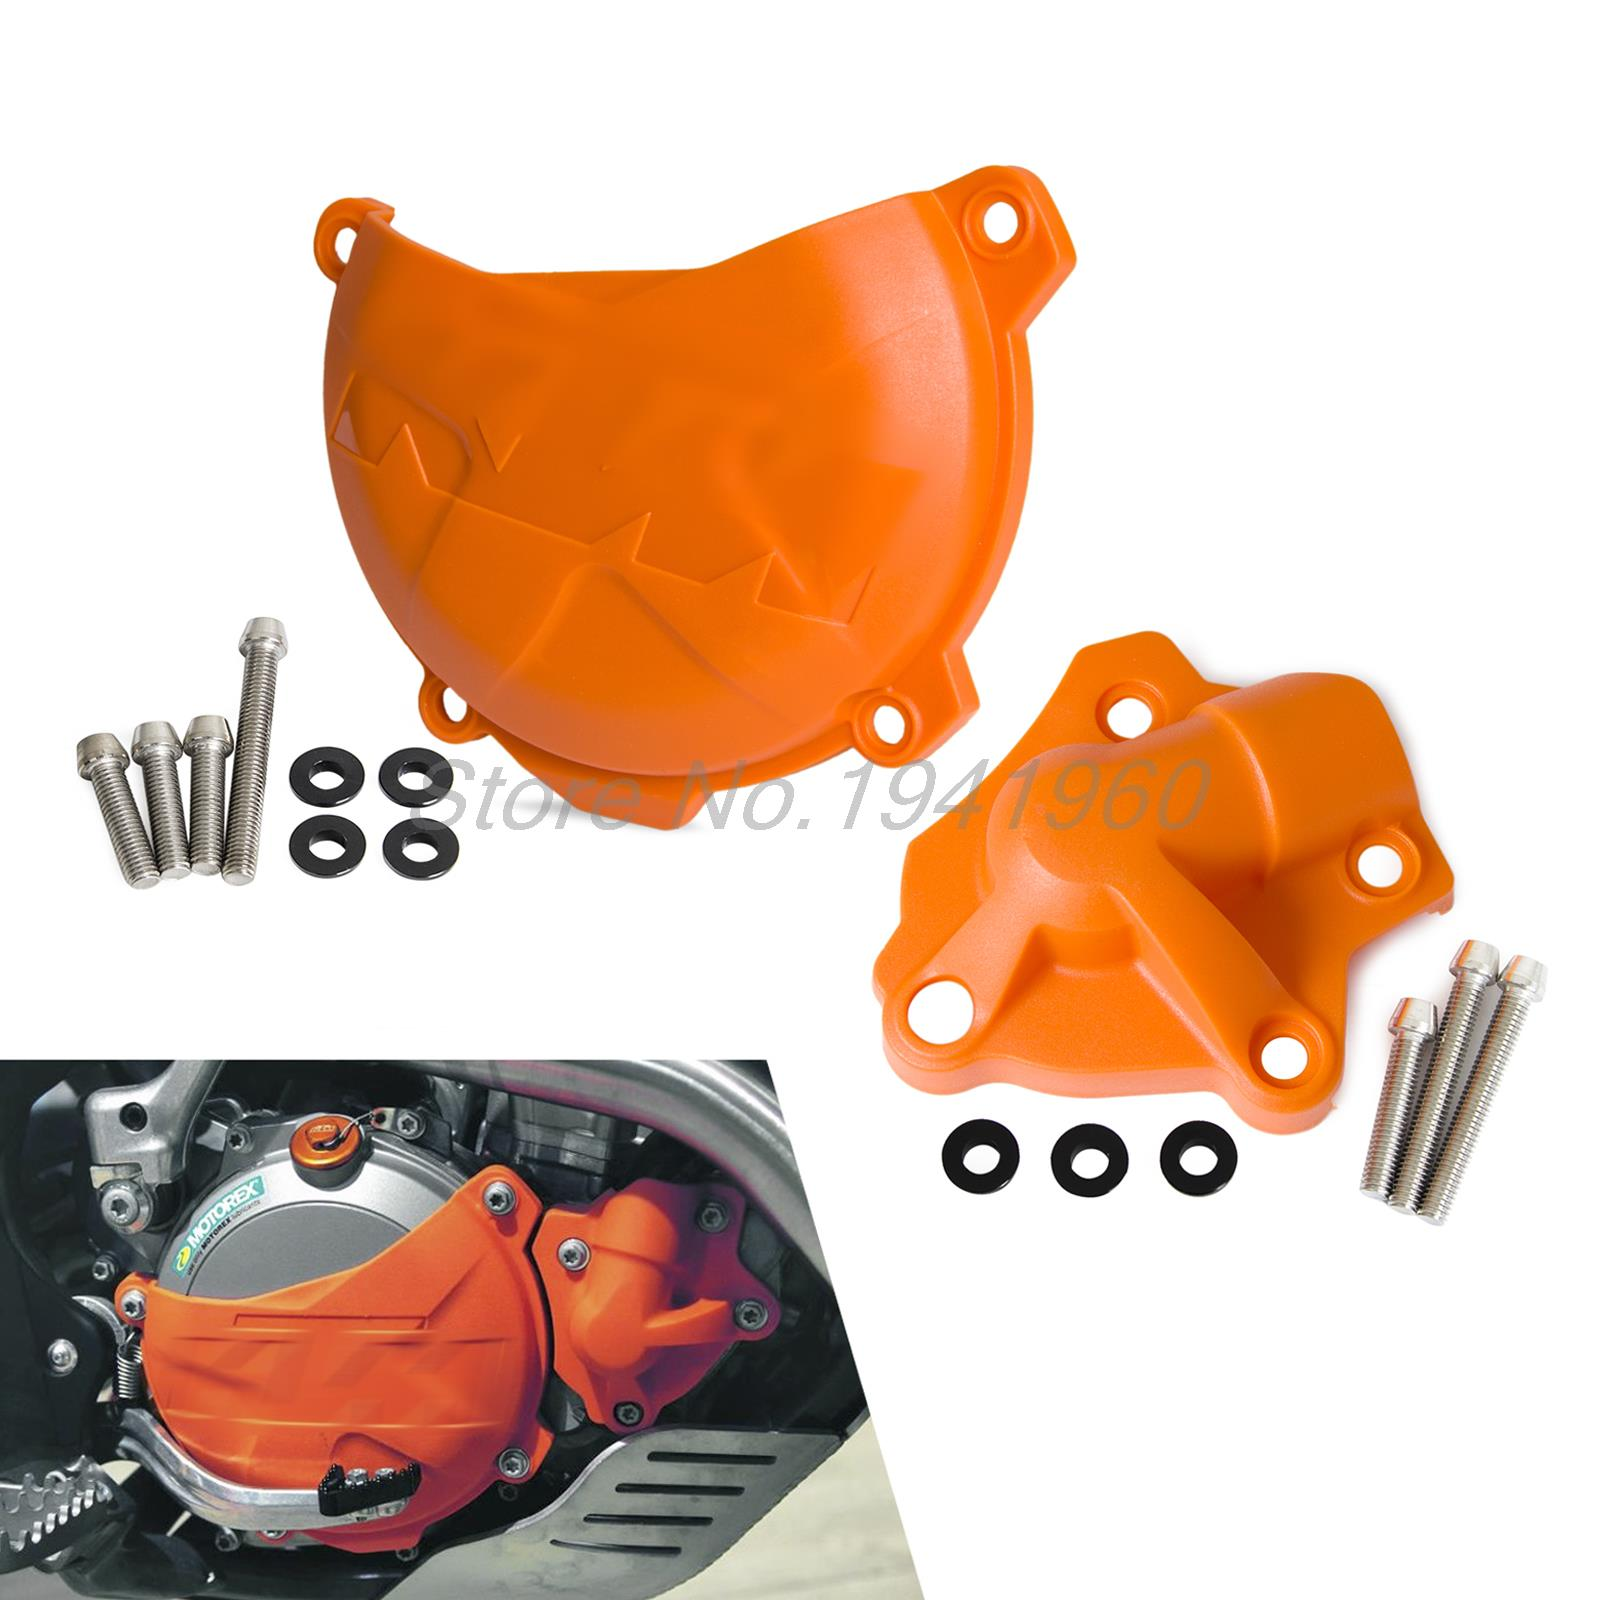 Motorcycle Clutch Cover Water Pump Cover Protector For KTM 250 350 SX-F EXC-F XC-F XCF-W FREERIDE 2011-2013 2014 2015 2016